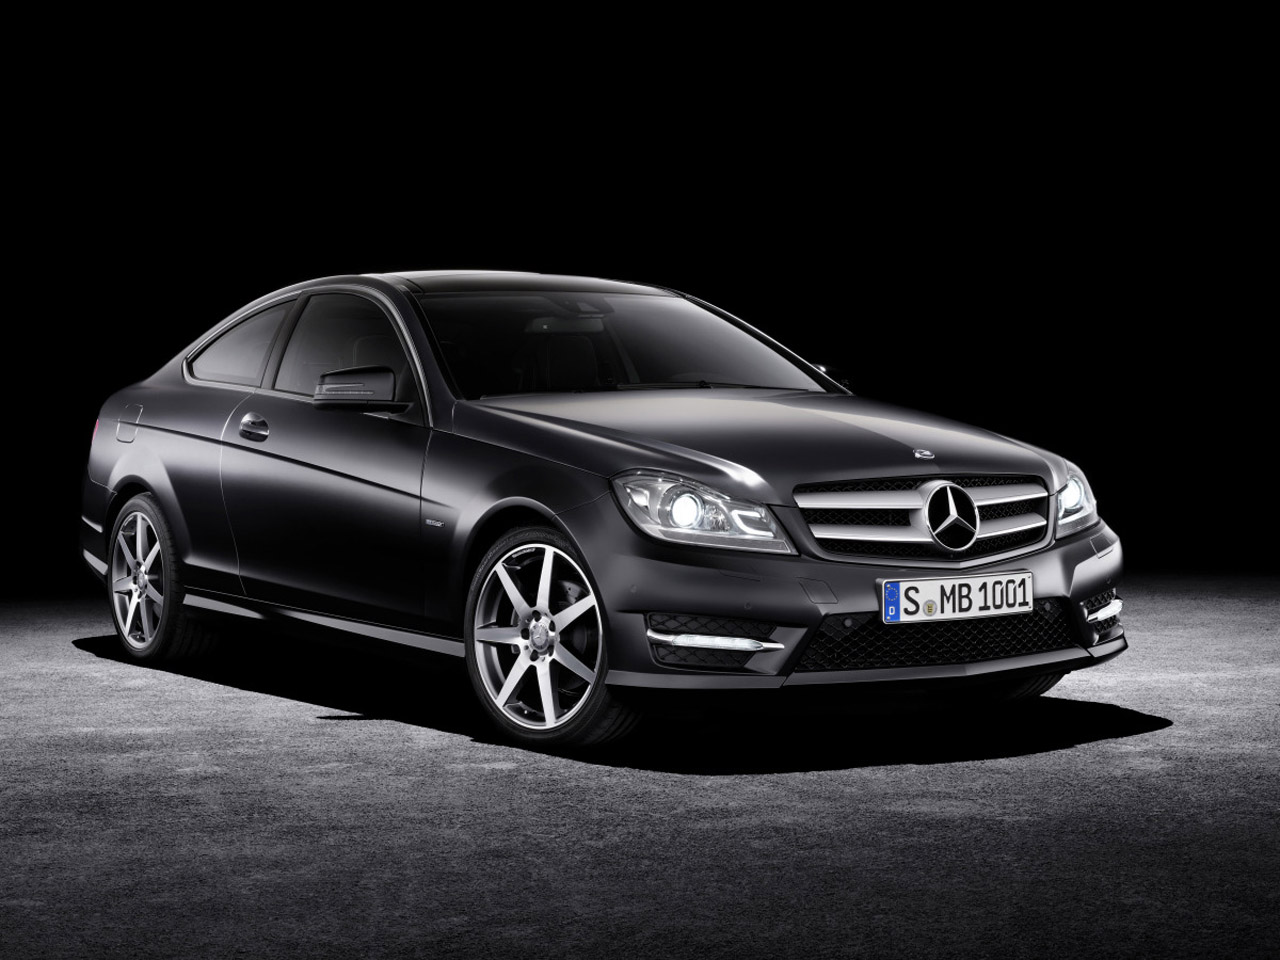 Mercedes-benz c350 photo - 2